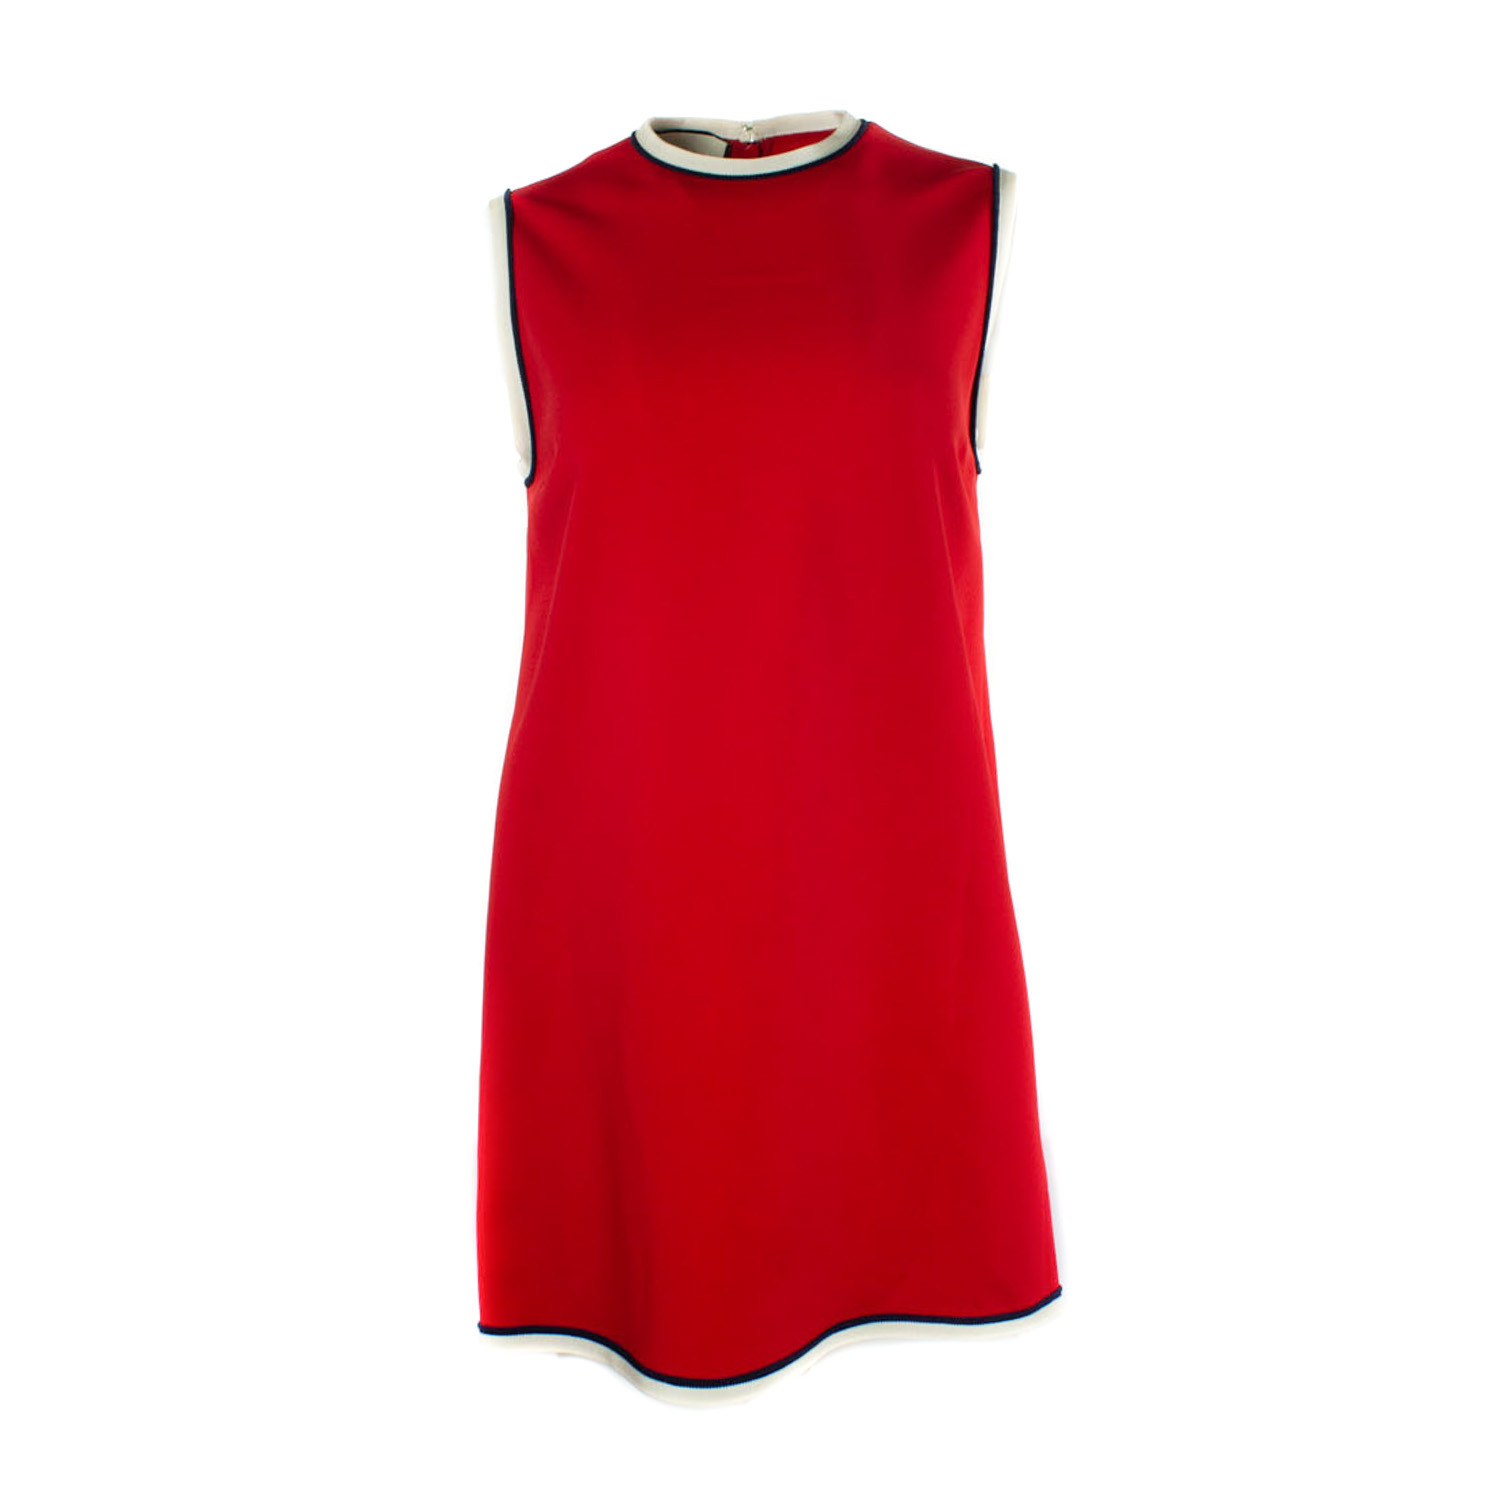 56696384a Women's Stretch Viscose Tunic Top // Red (US: 42) - Gucci - Touch of ...